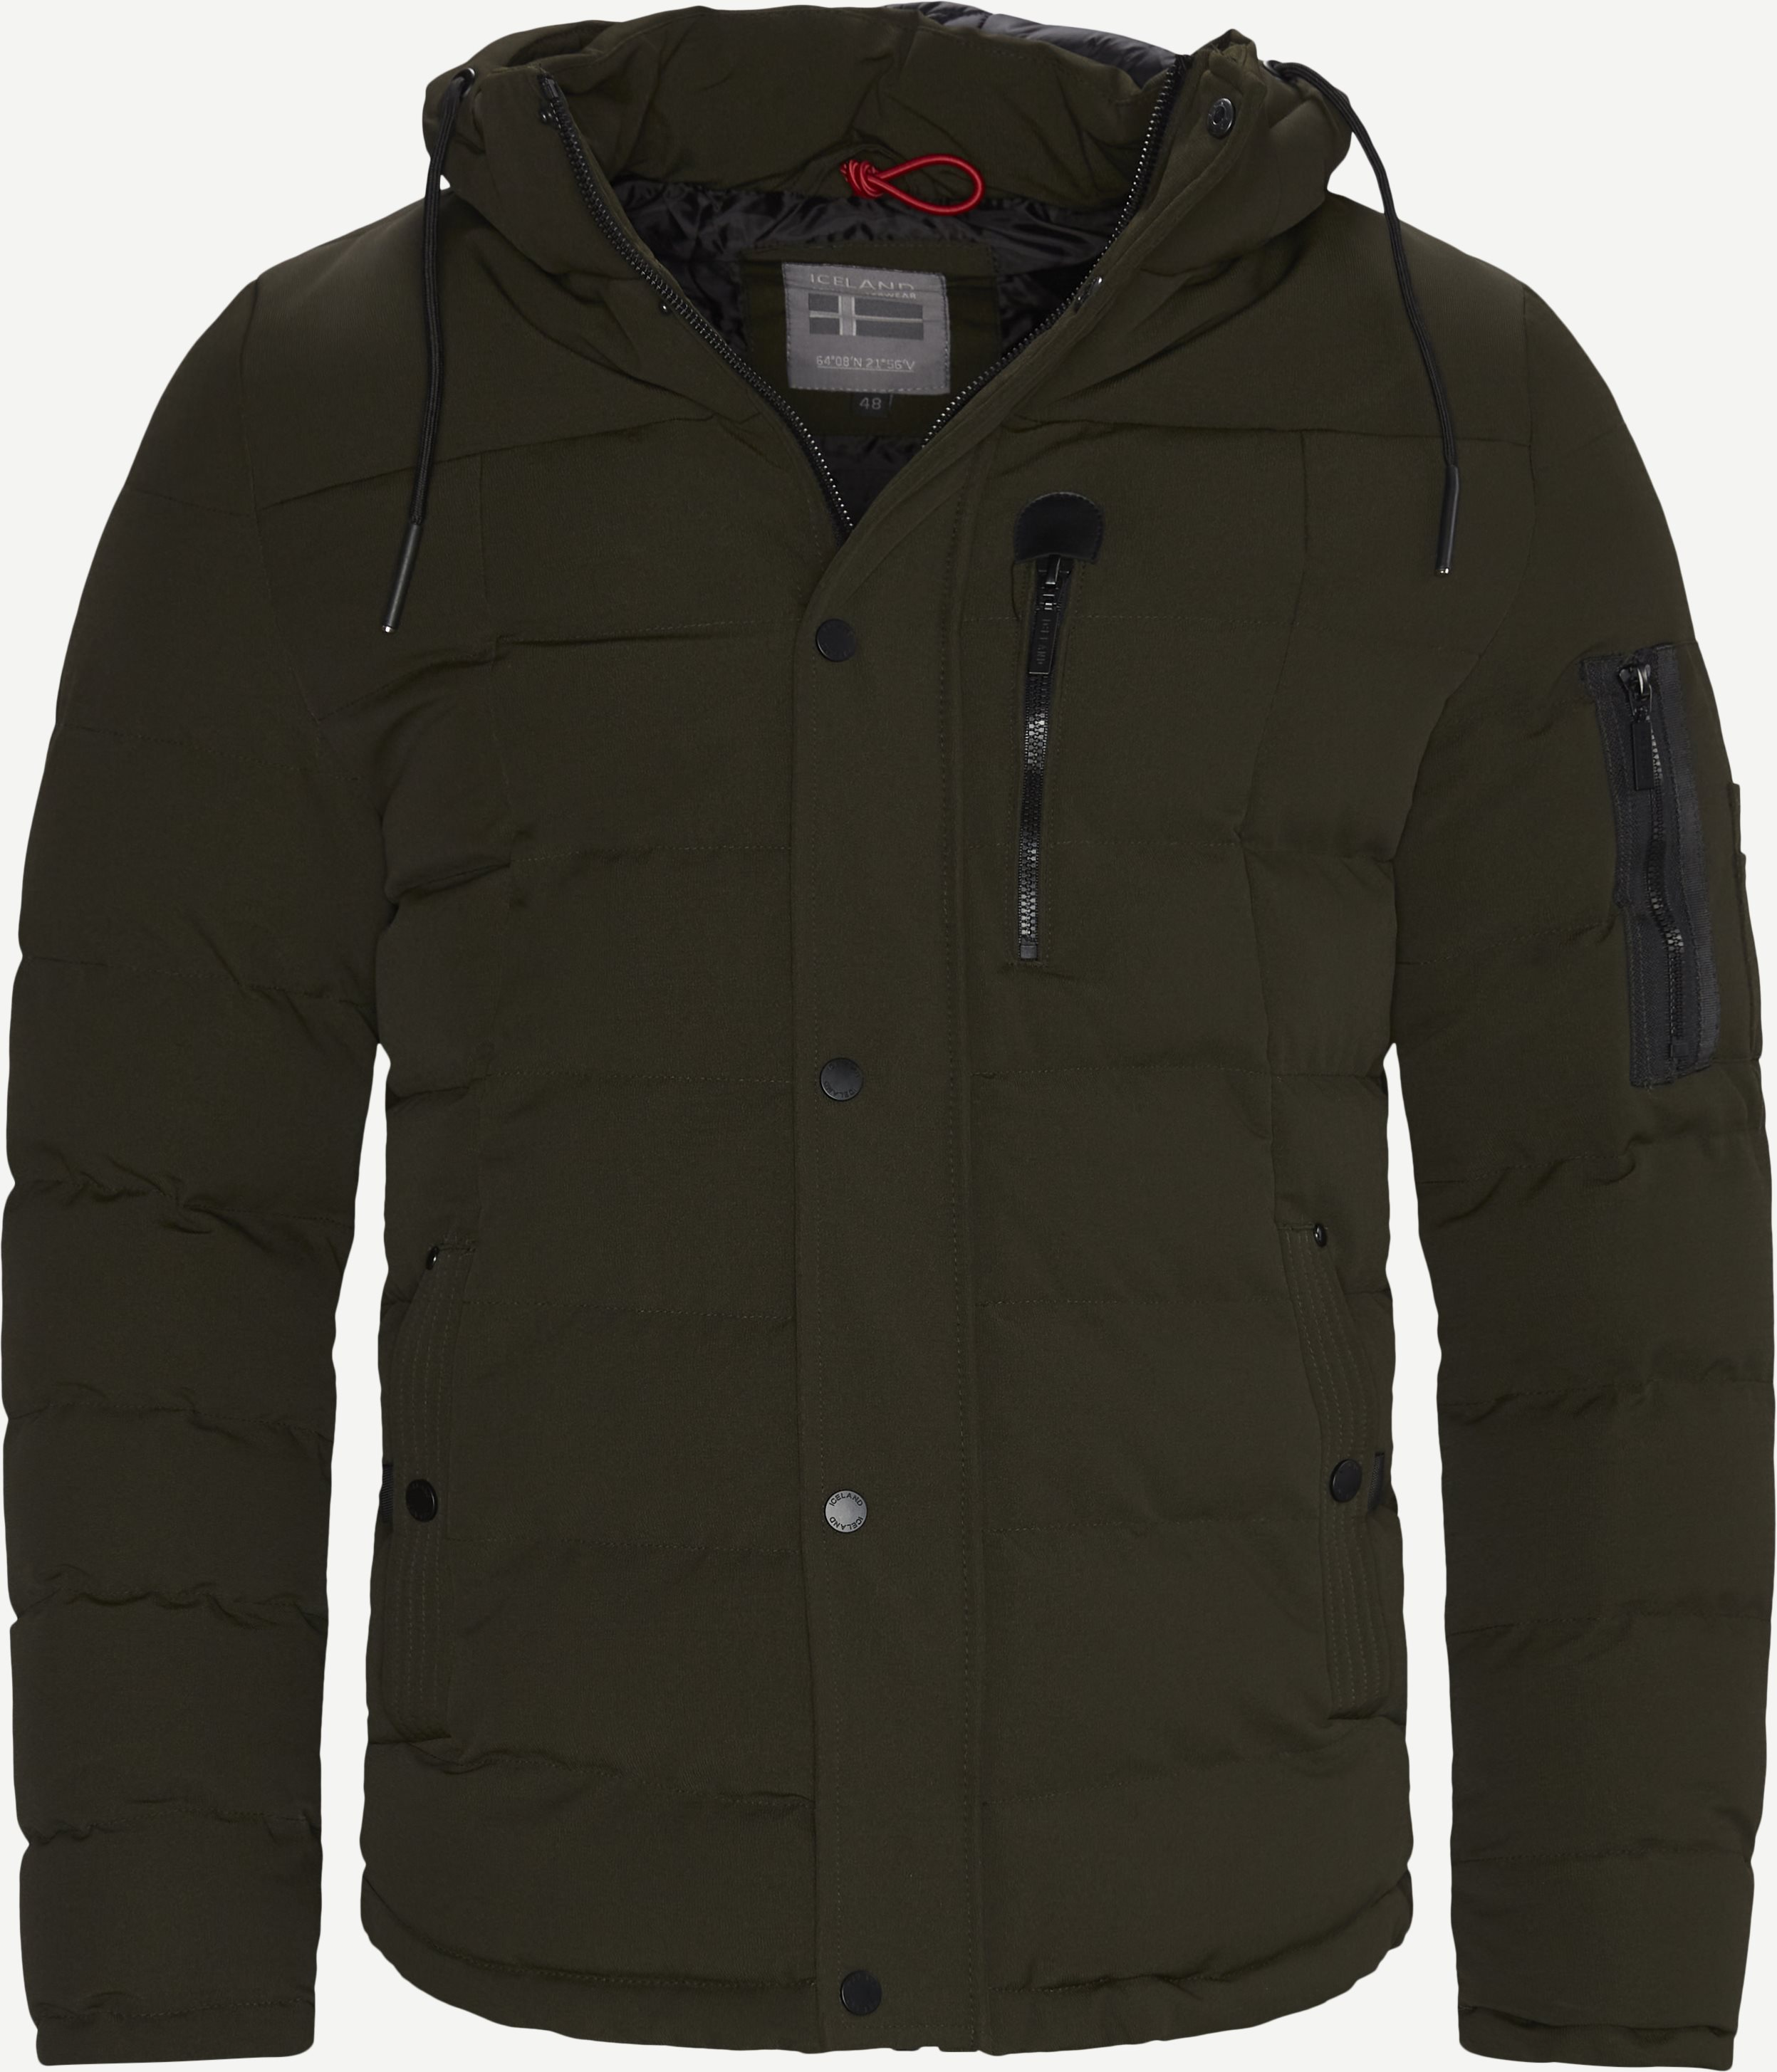 Selfoss Jacket - Jackets - Regular - Army